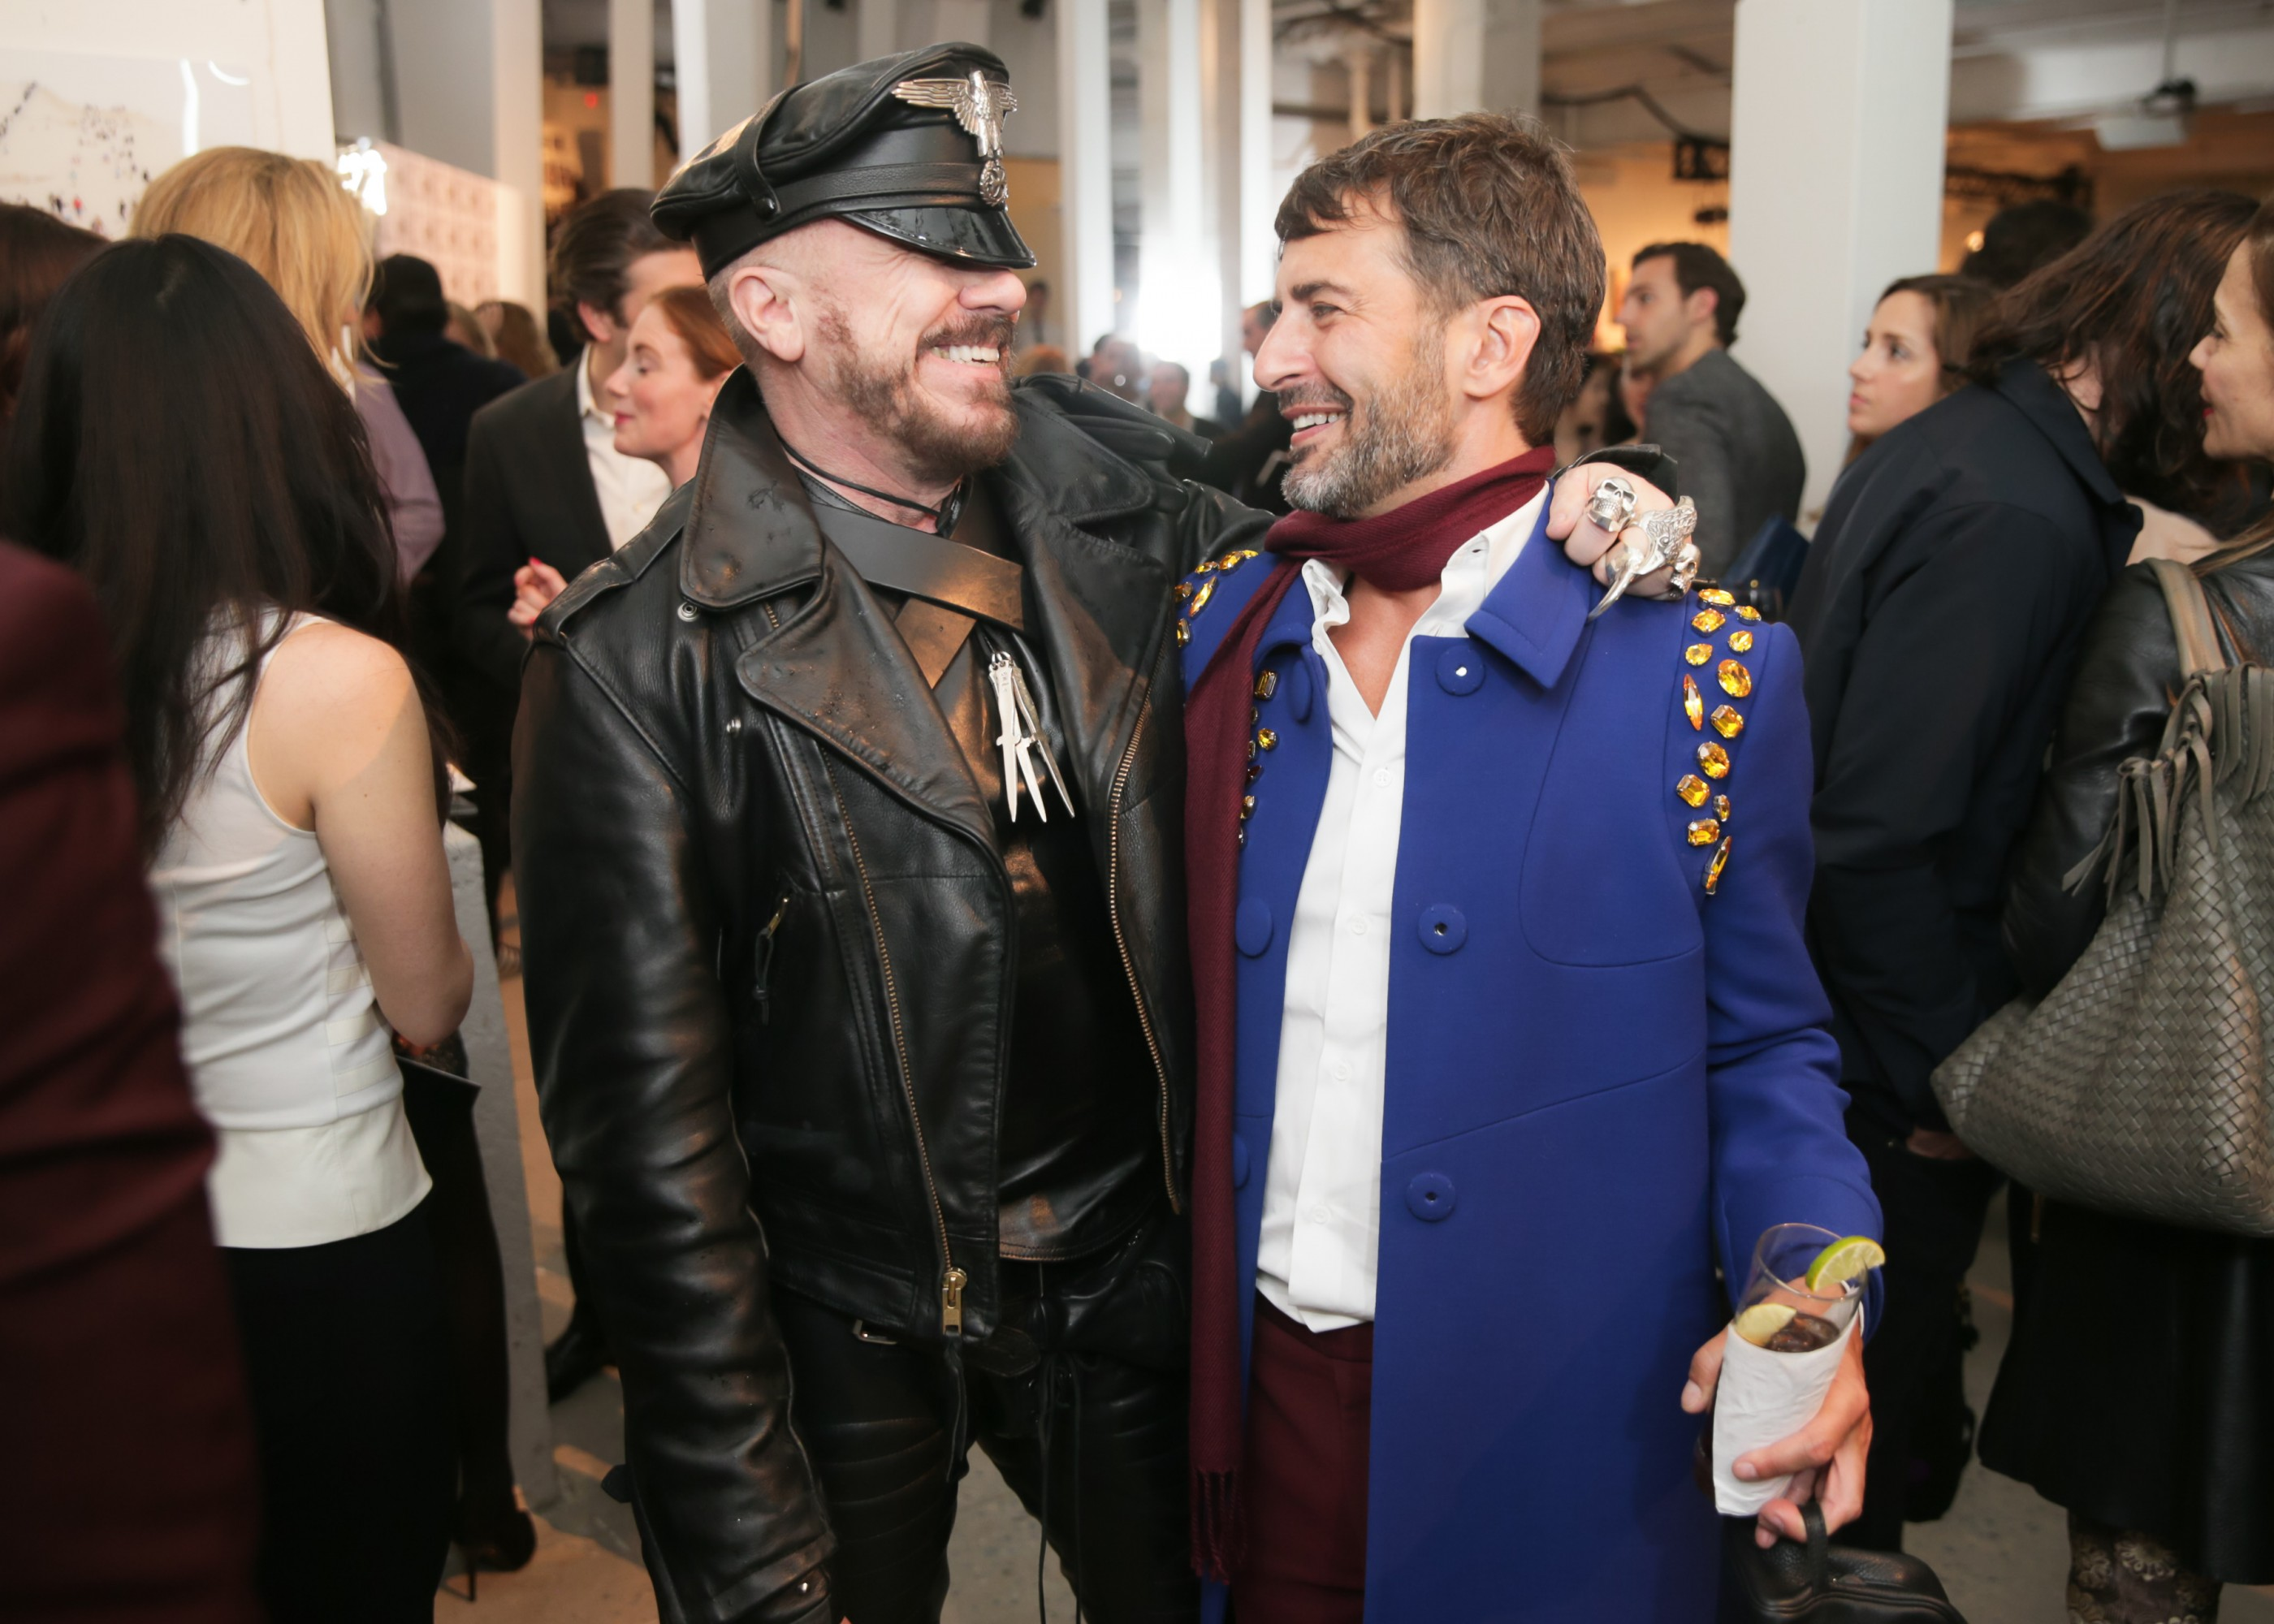 FREE ARTS NYC 15th Annual Art Auction with MARC JACOBS  & SCOTT CAMPBELL